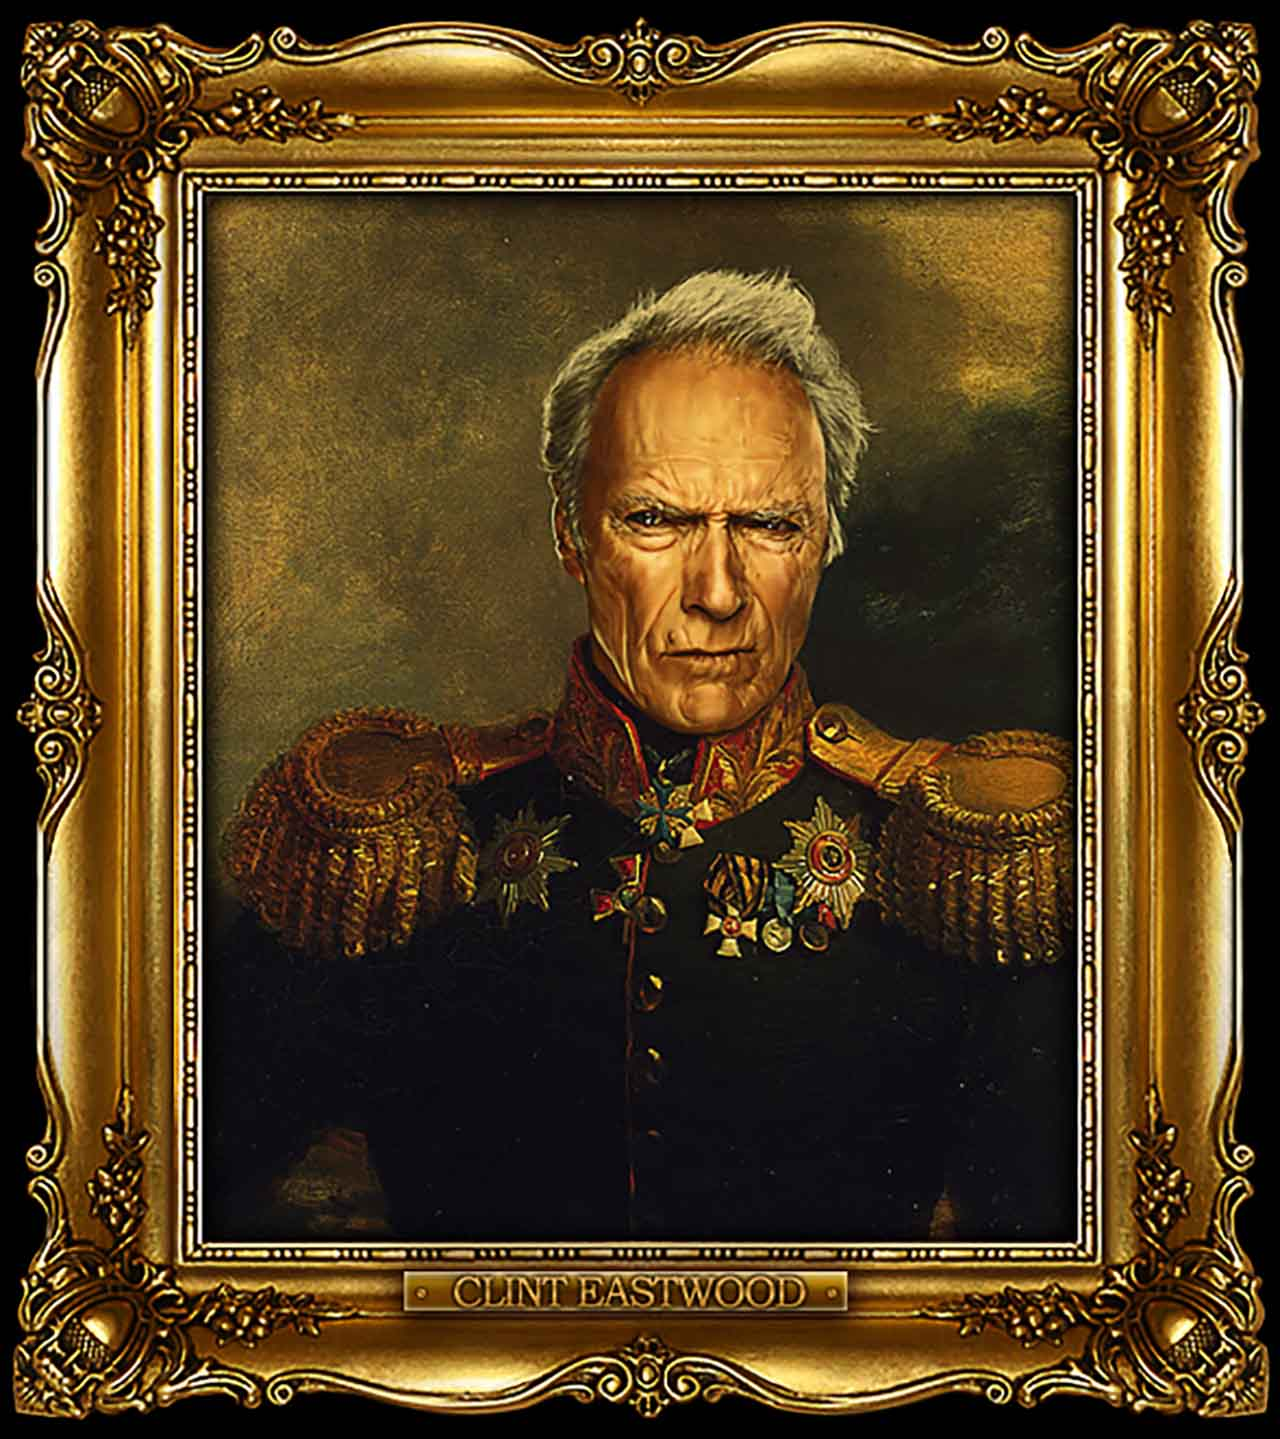 Artist Turns Famous Actors Into Russian Generals - Clint Eastwood